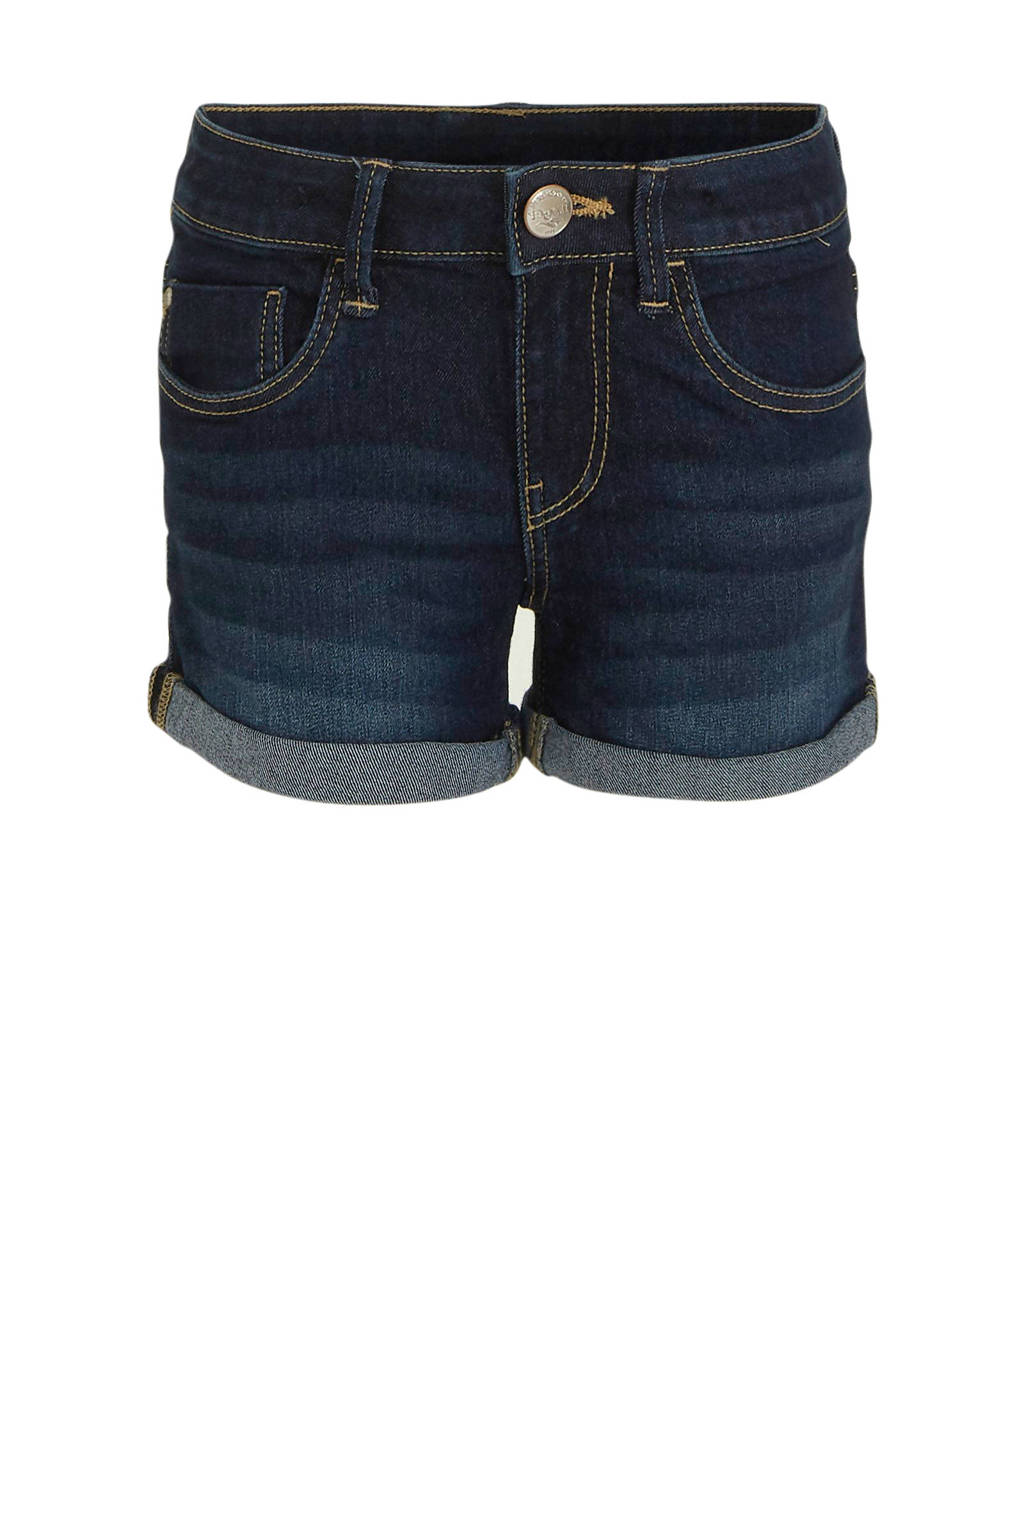 C&A Here & There jeans short dark denim, Dark denim